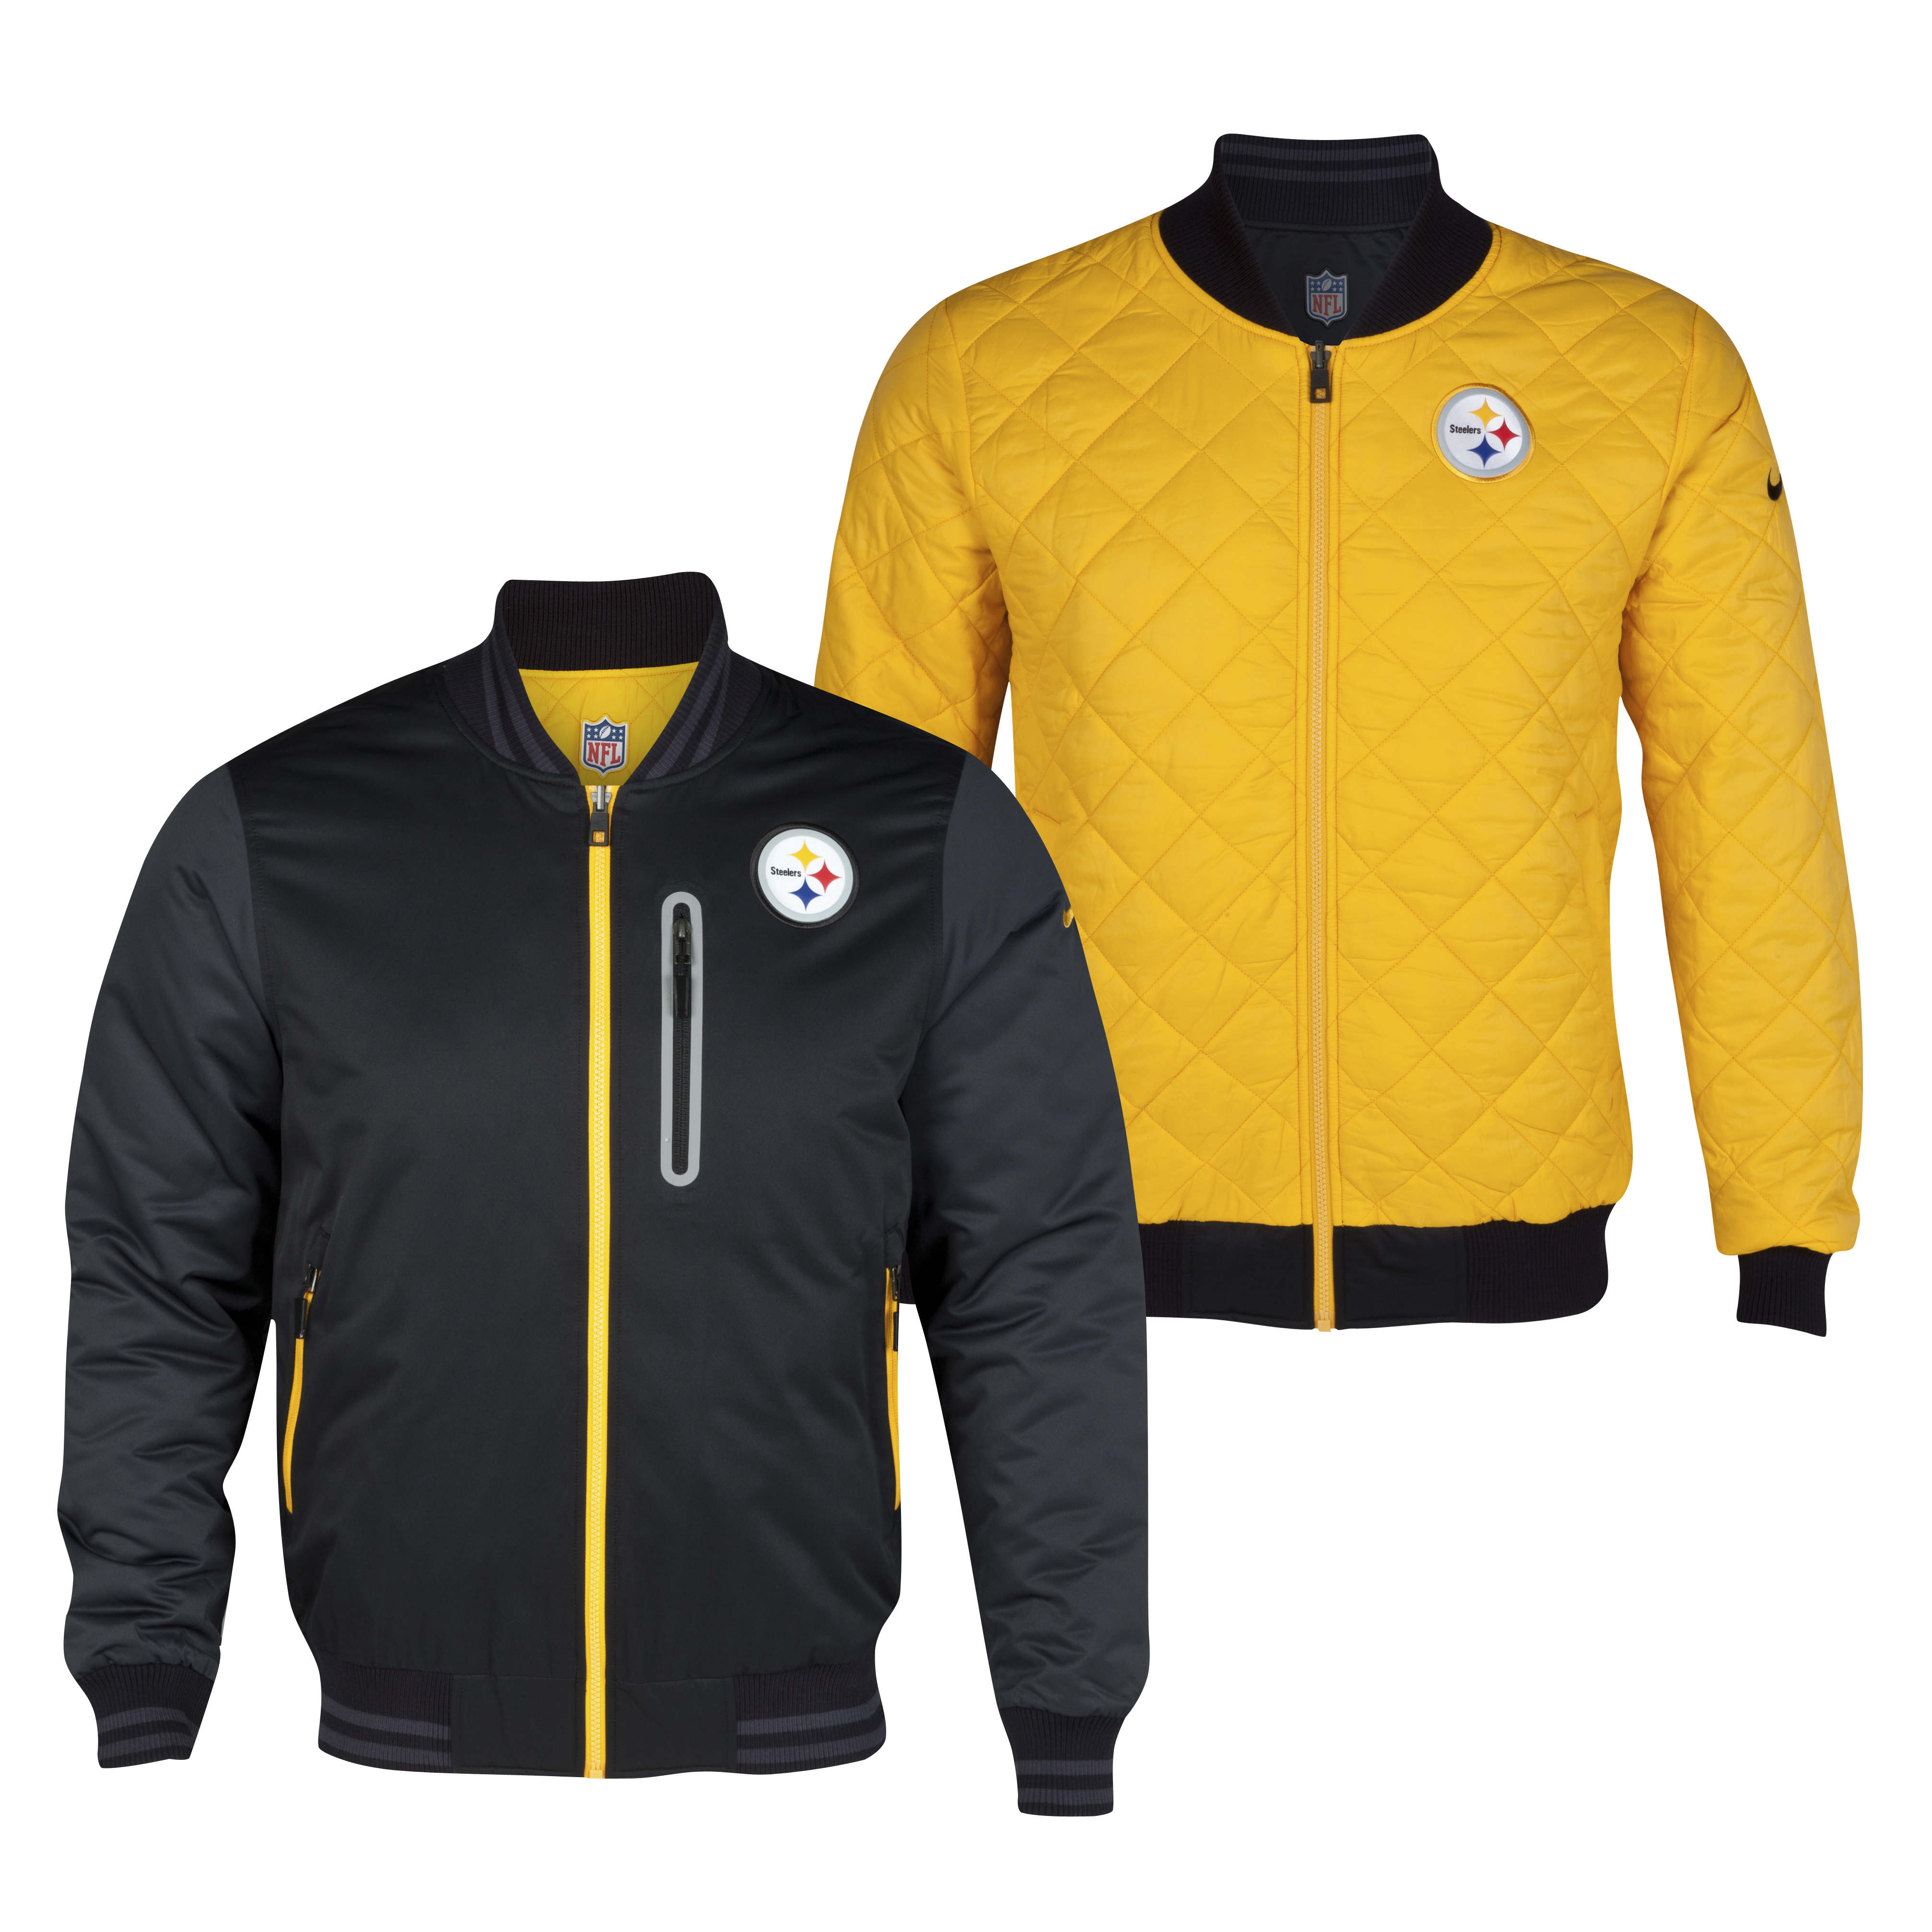 Pittsburgh Steelers Destroyer Jacket - Black